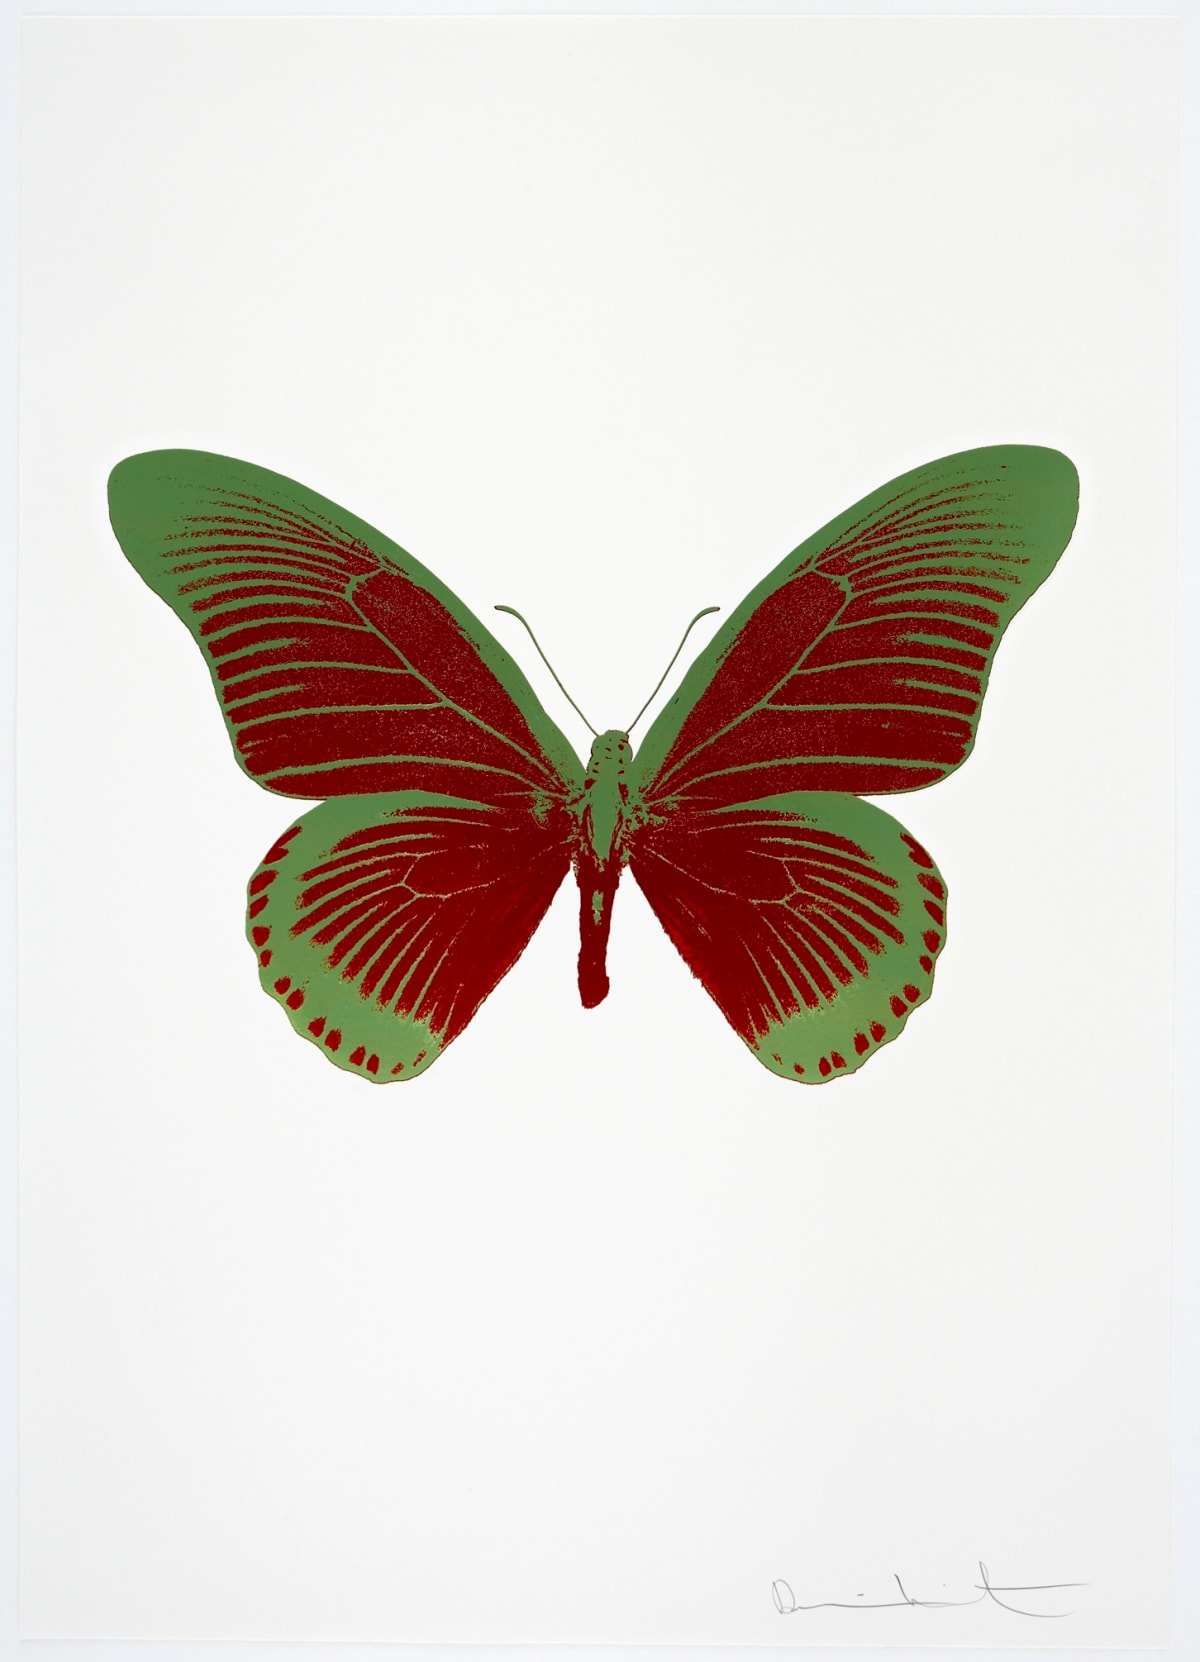 Damien Hirst The Souls IV - Chilli Red/Leaf Green Damien Hirst butterfly foil print for sale Damien Hirst print for sale , 2010 2 colour foil block on 300gsm Arches 88 archival paper. Signed and numbered. Published by Paul Stolper and Other Criteria 72 x 51cm OC8005 / 1418-28 Edition of 15